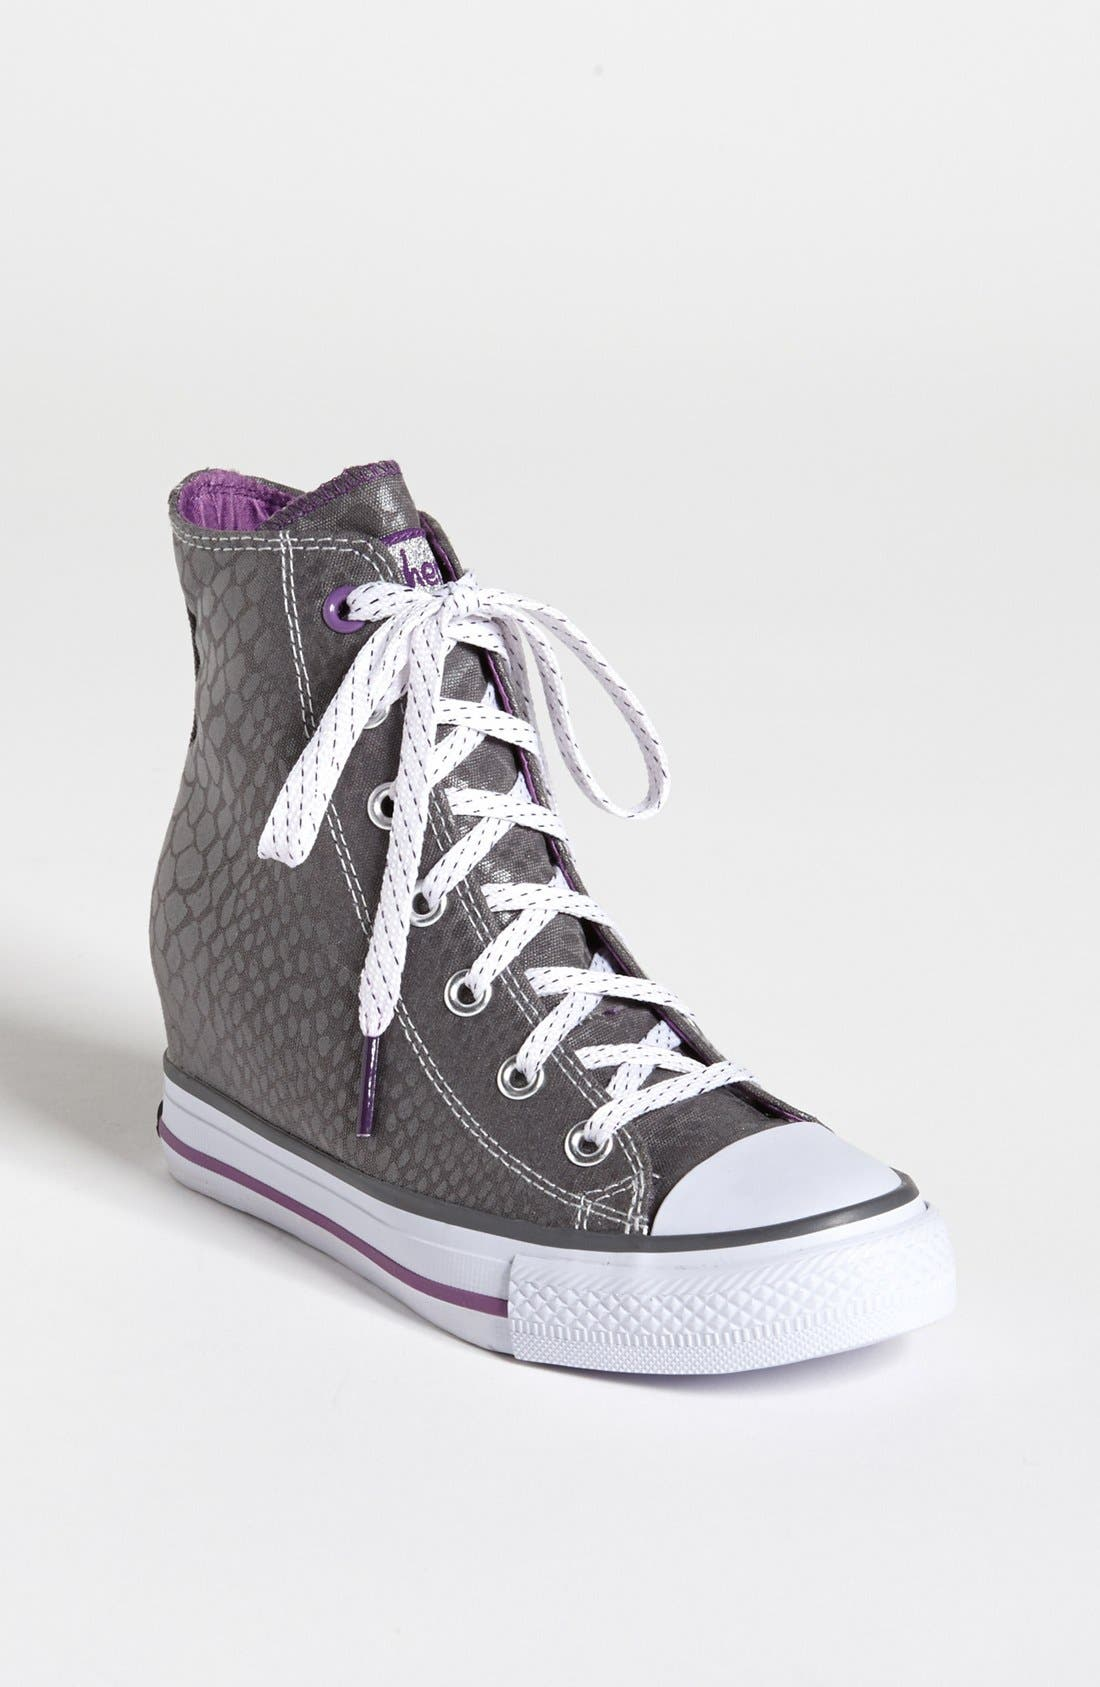 Main Image - SKECHERS 'Gimme Wedge' Sneaker (Toddler, Little Kid & Big Kid)